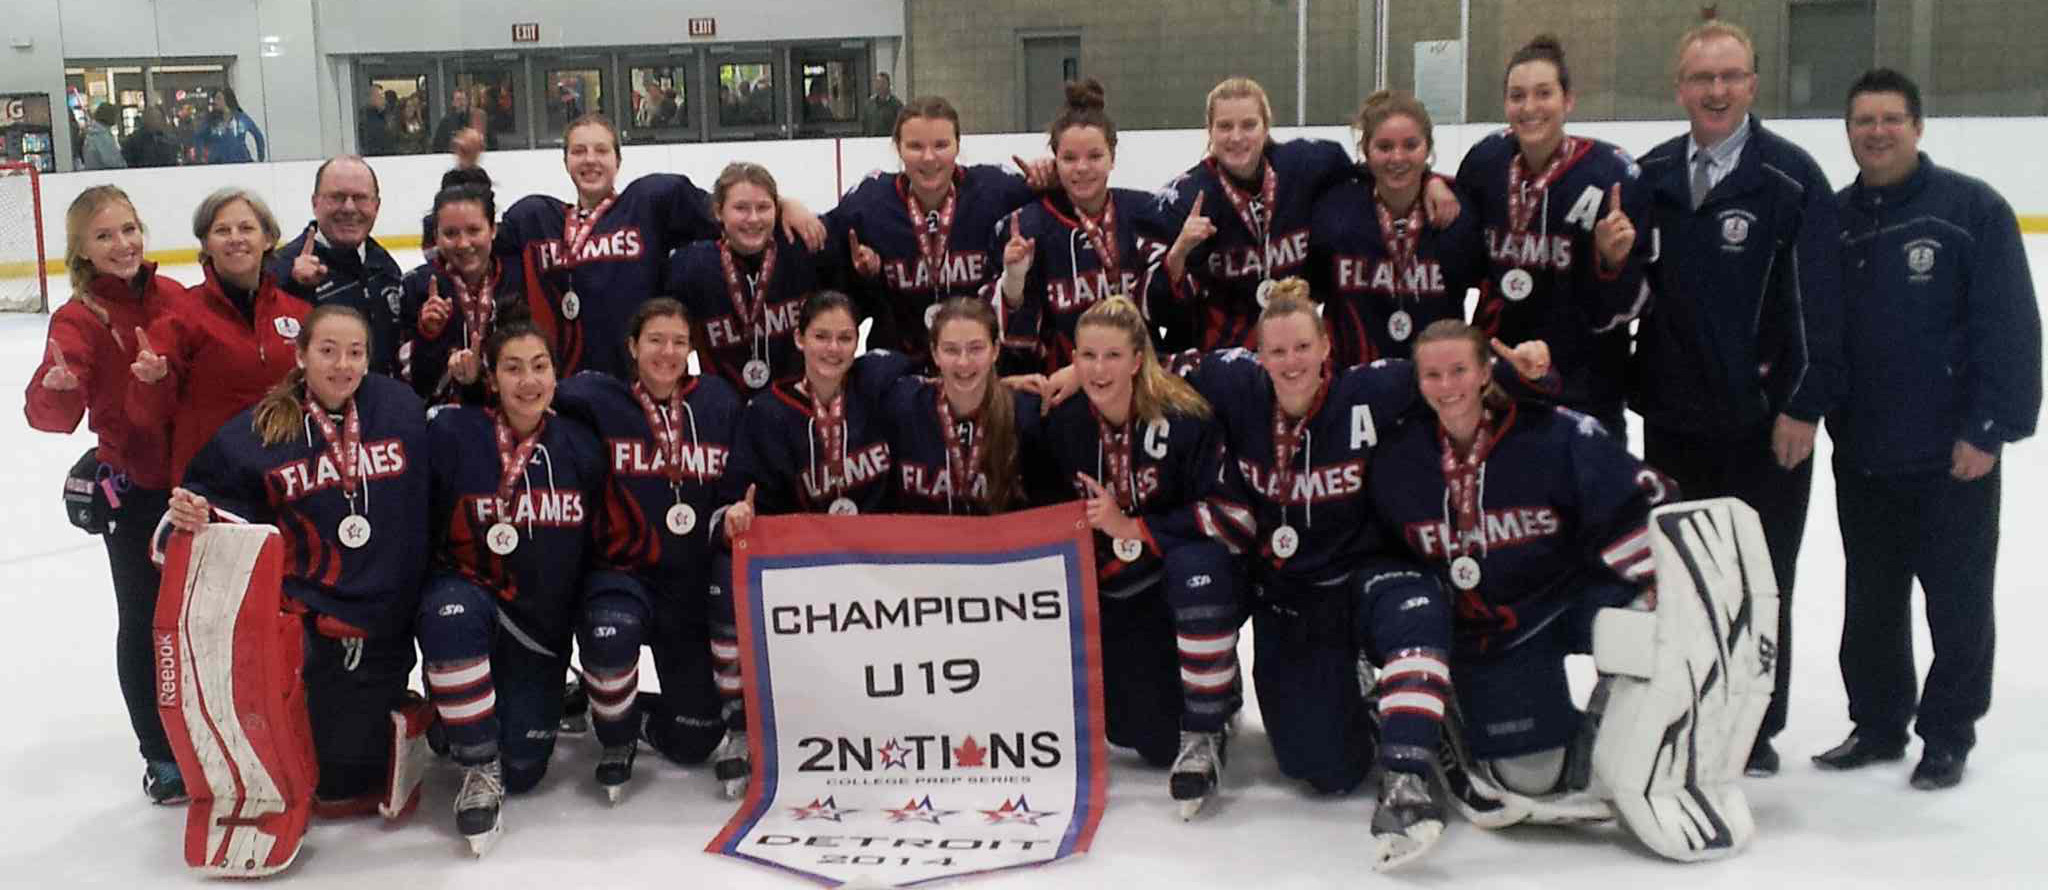 The St. Mary's Academy Flames girls hockey team